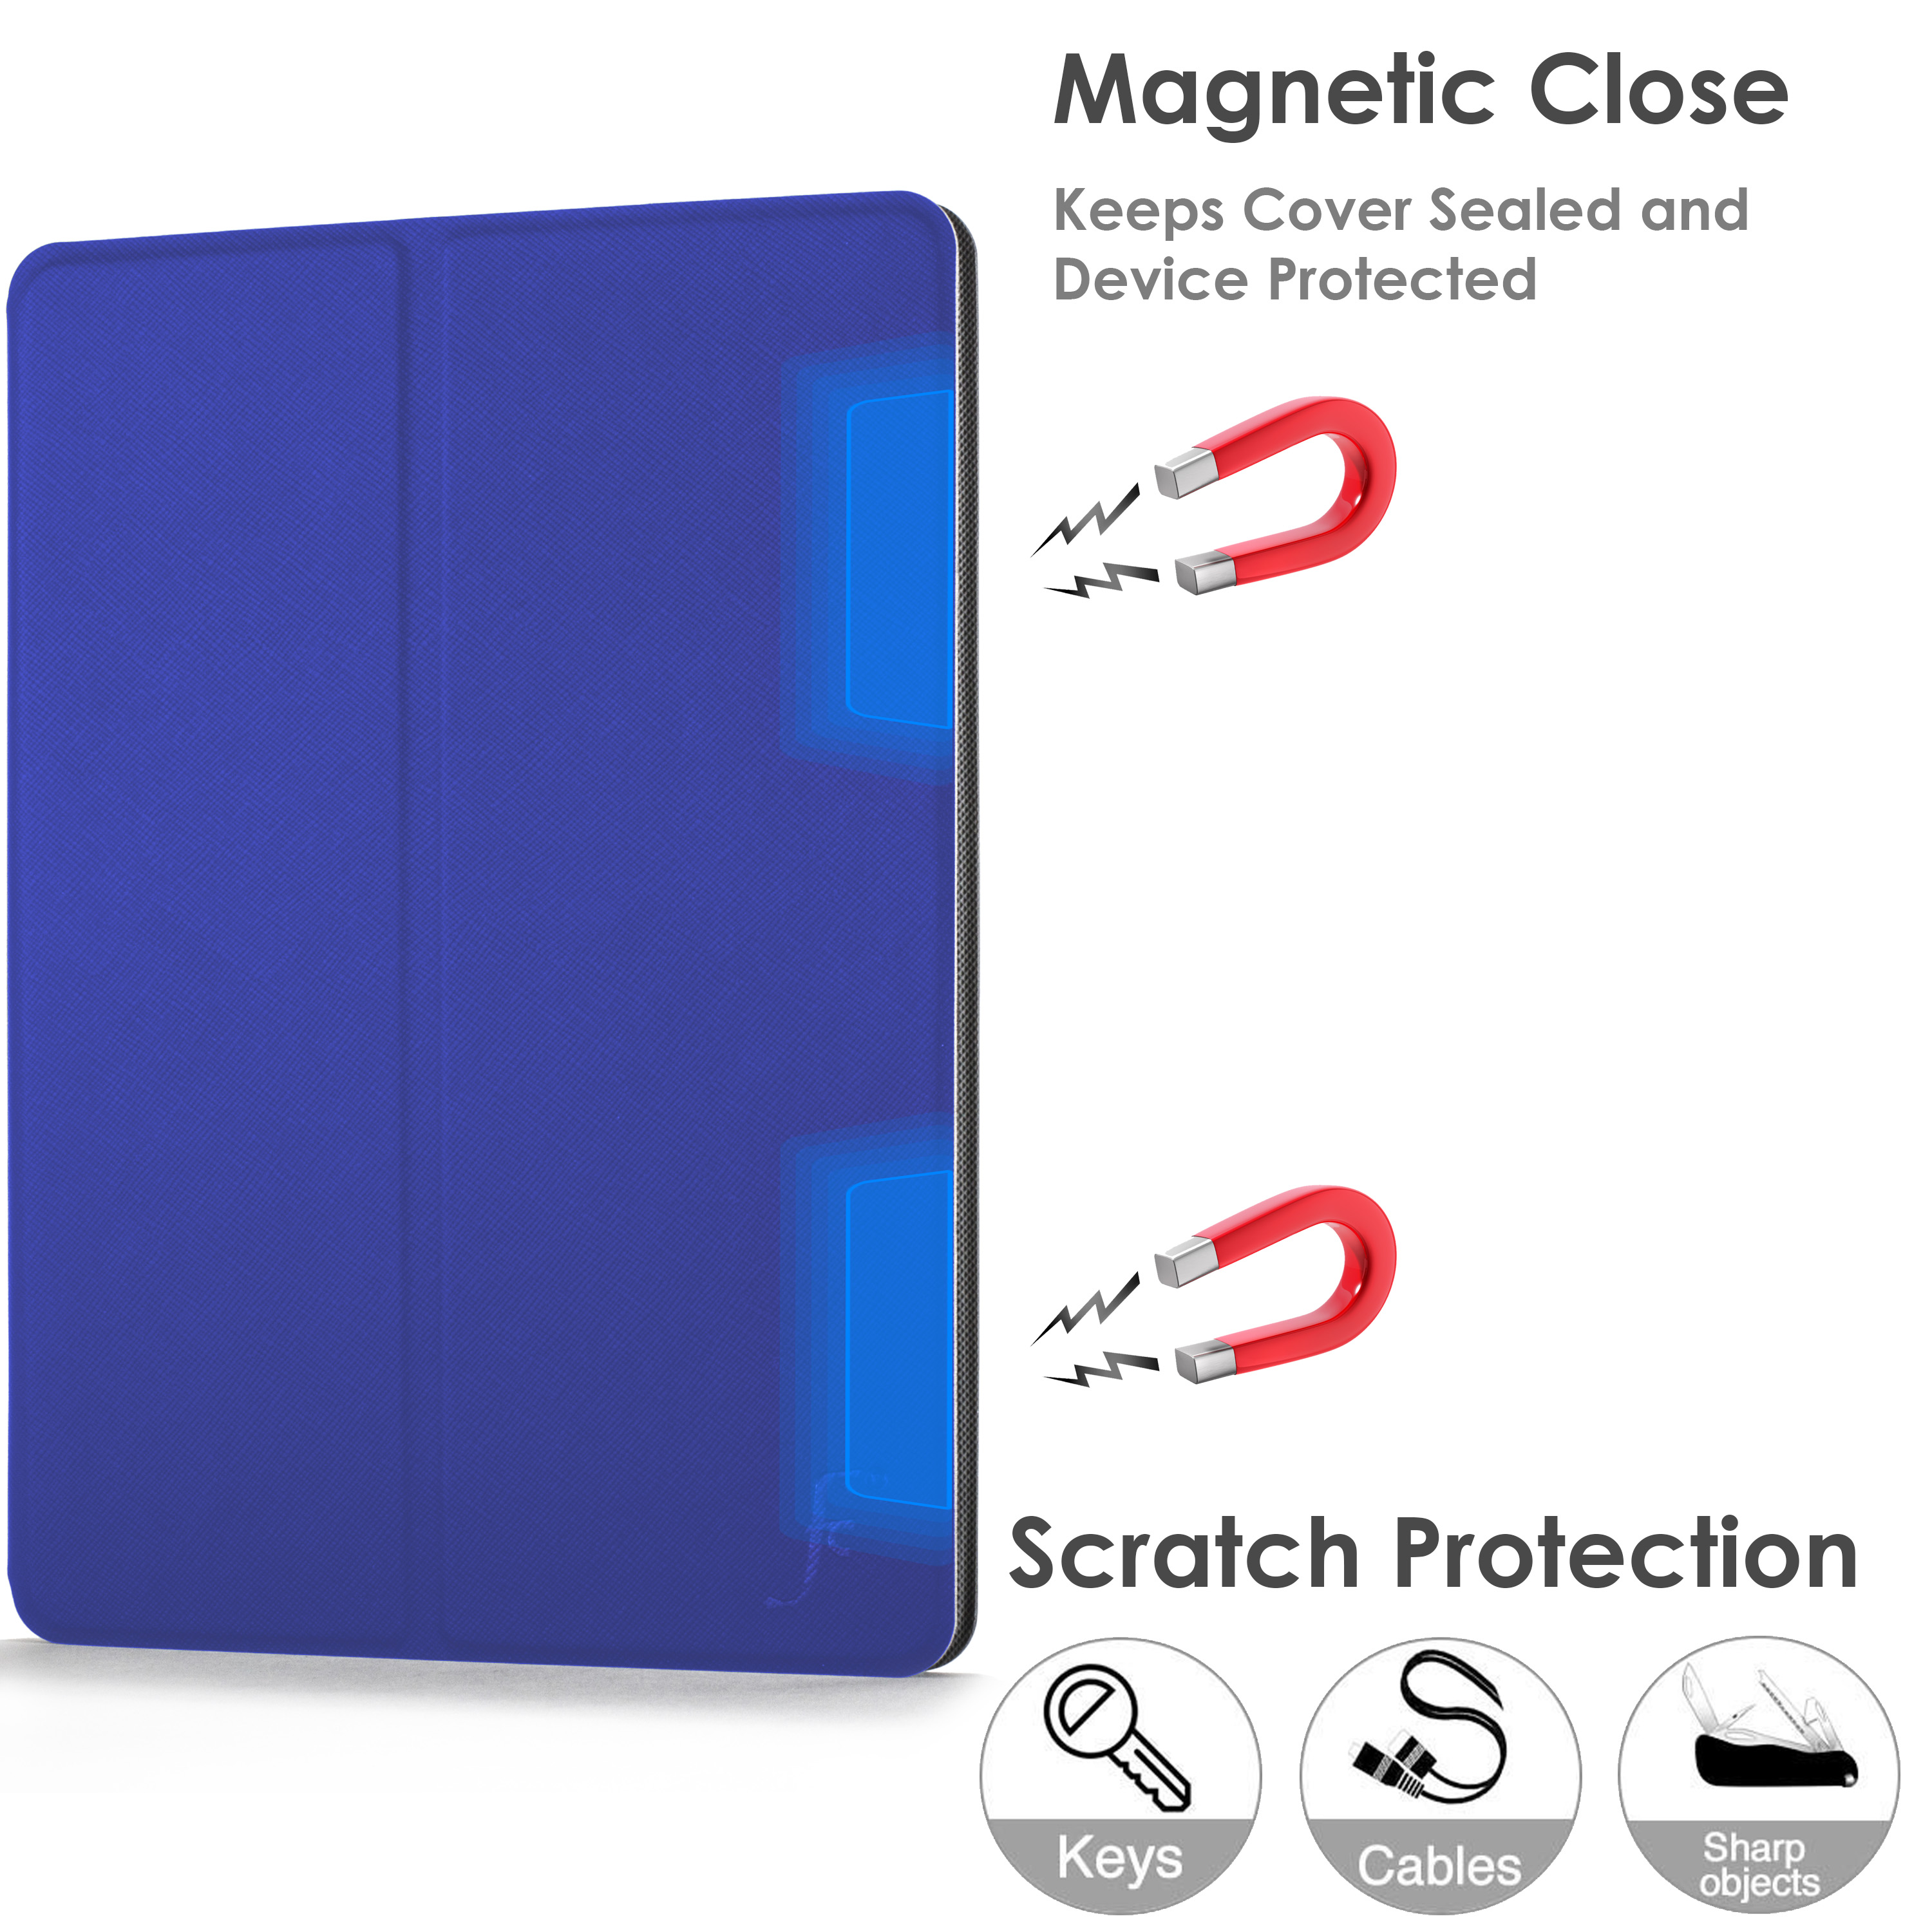 miniature 87 - Samsung Galaxy Tab A 10.1 2019 Étui Magnétique Protection & Support + Stylet